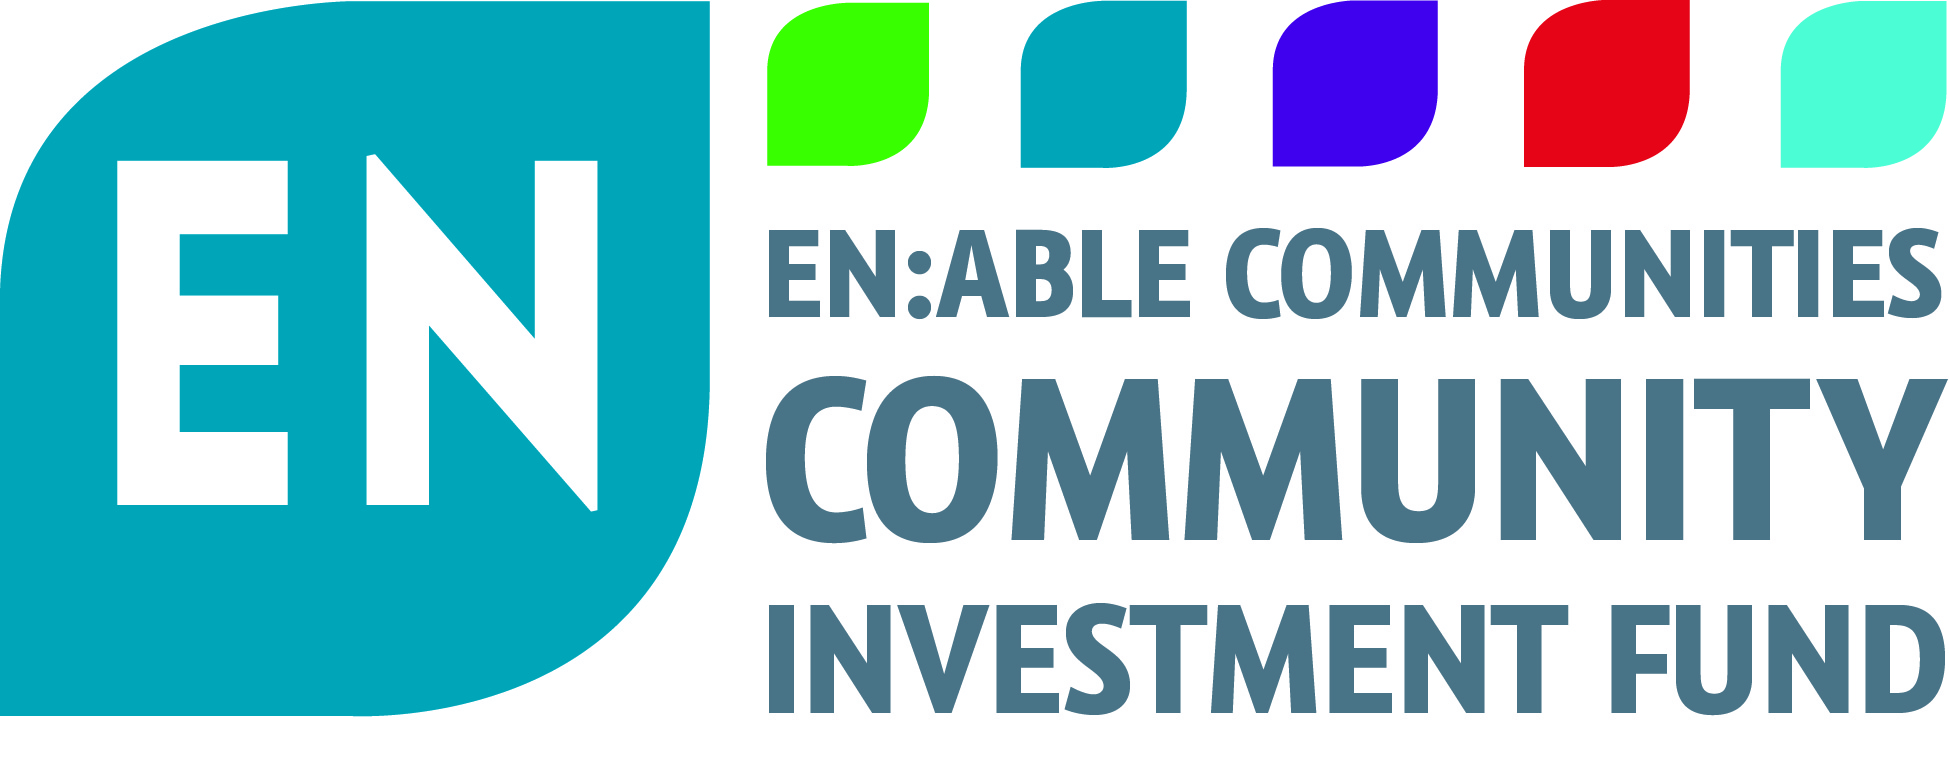 Community Investment Fund logo large CMYK 300 dpi